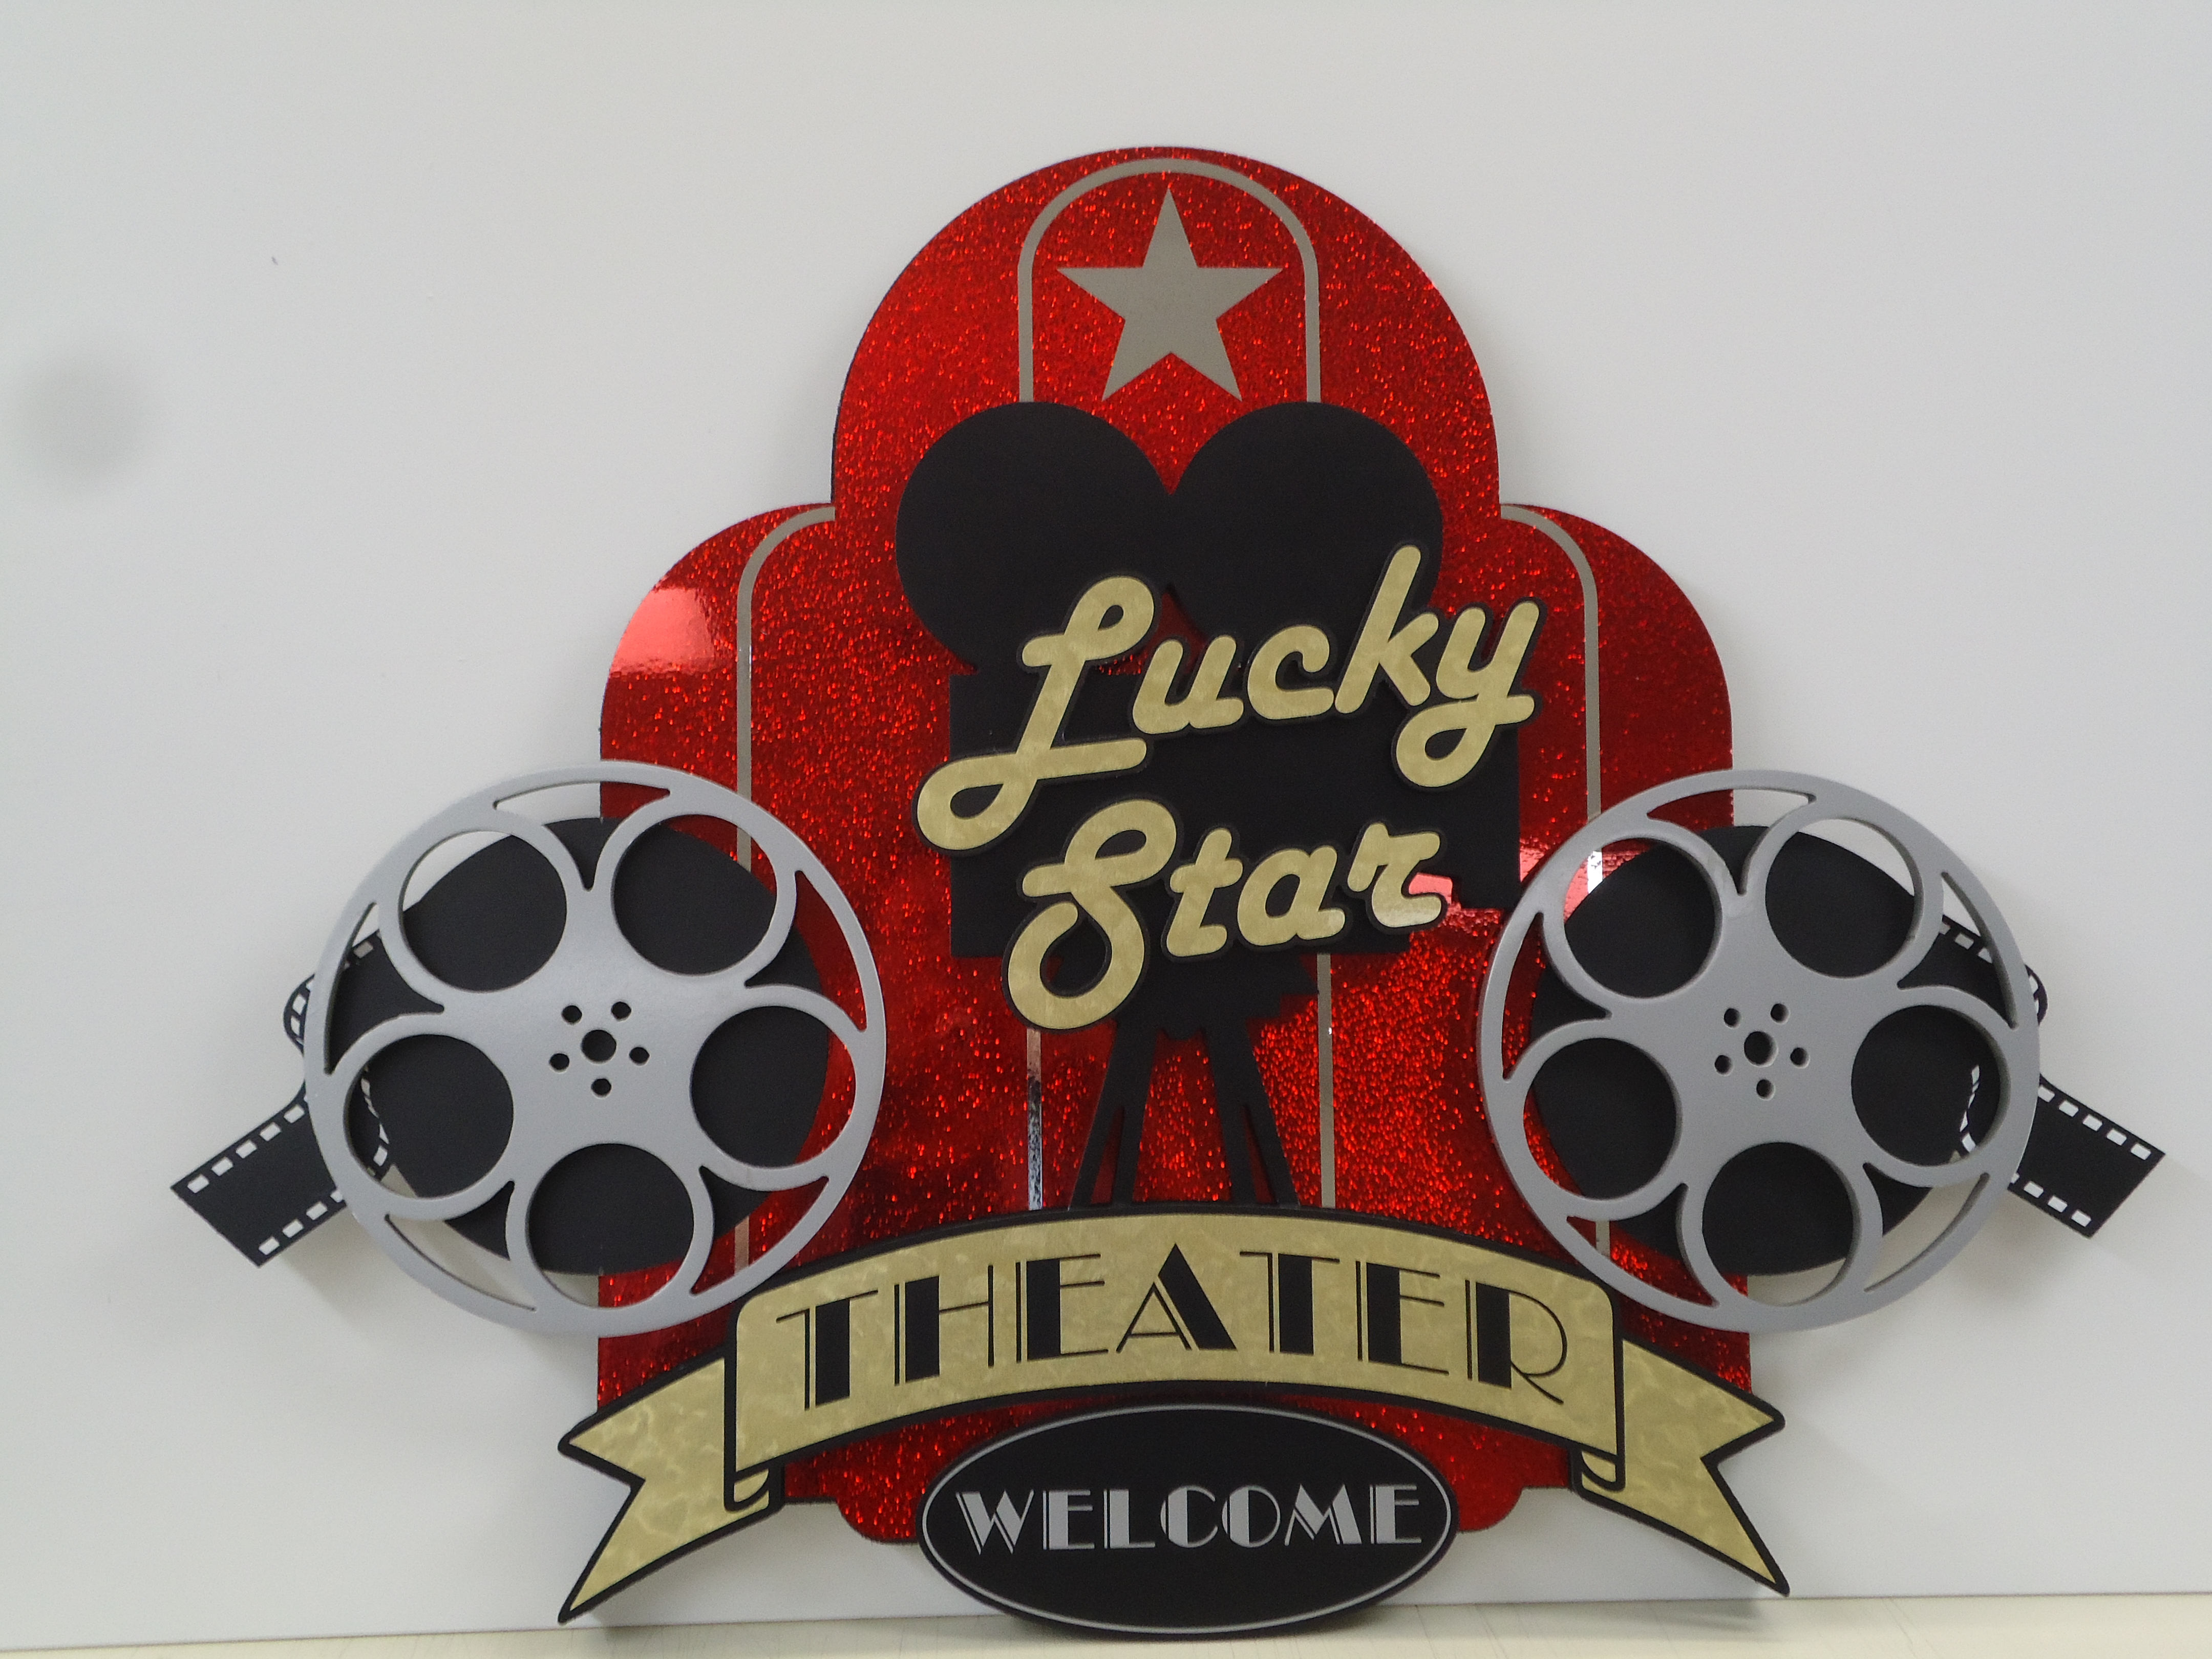 Lucky Star theater sign